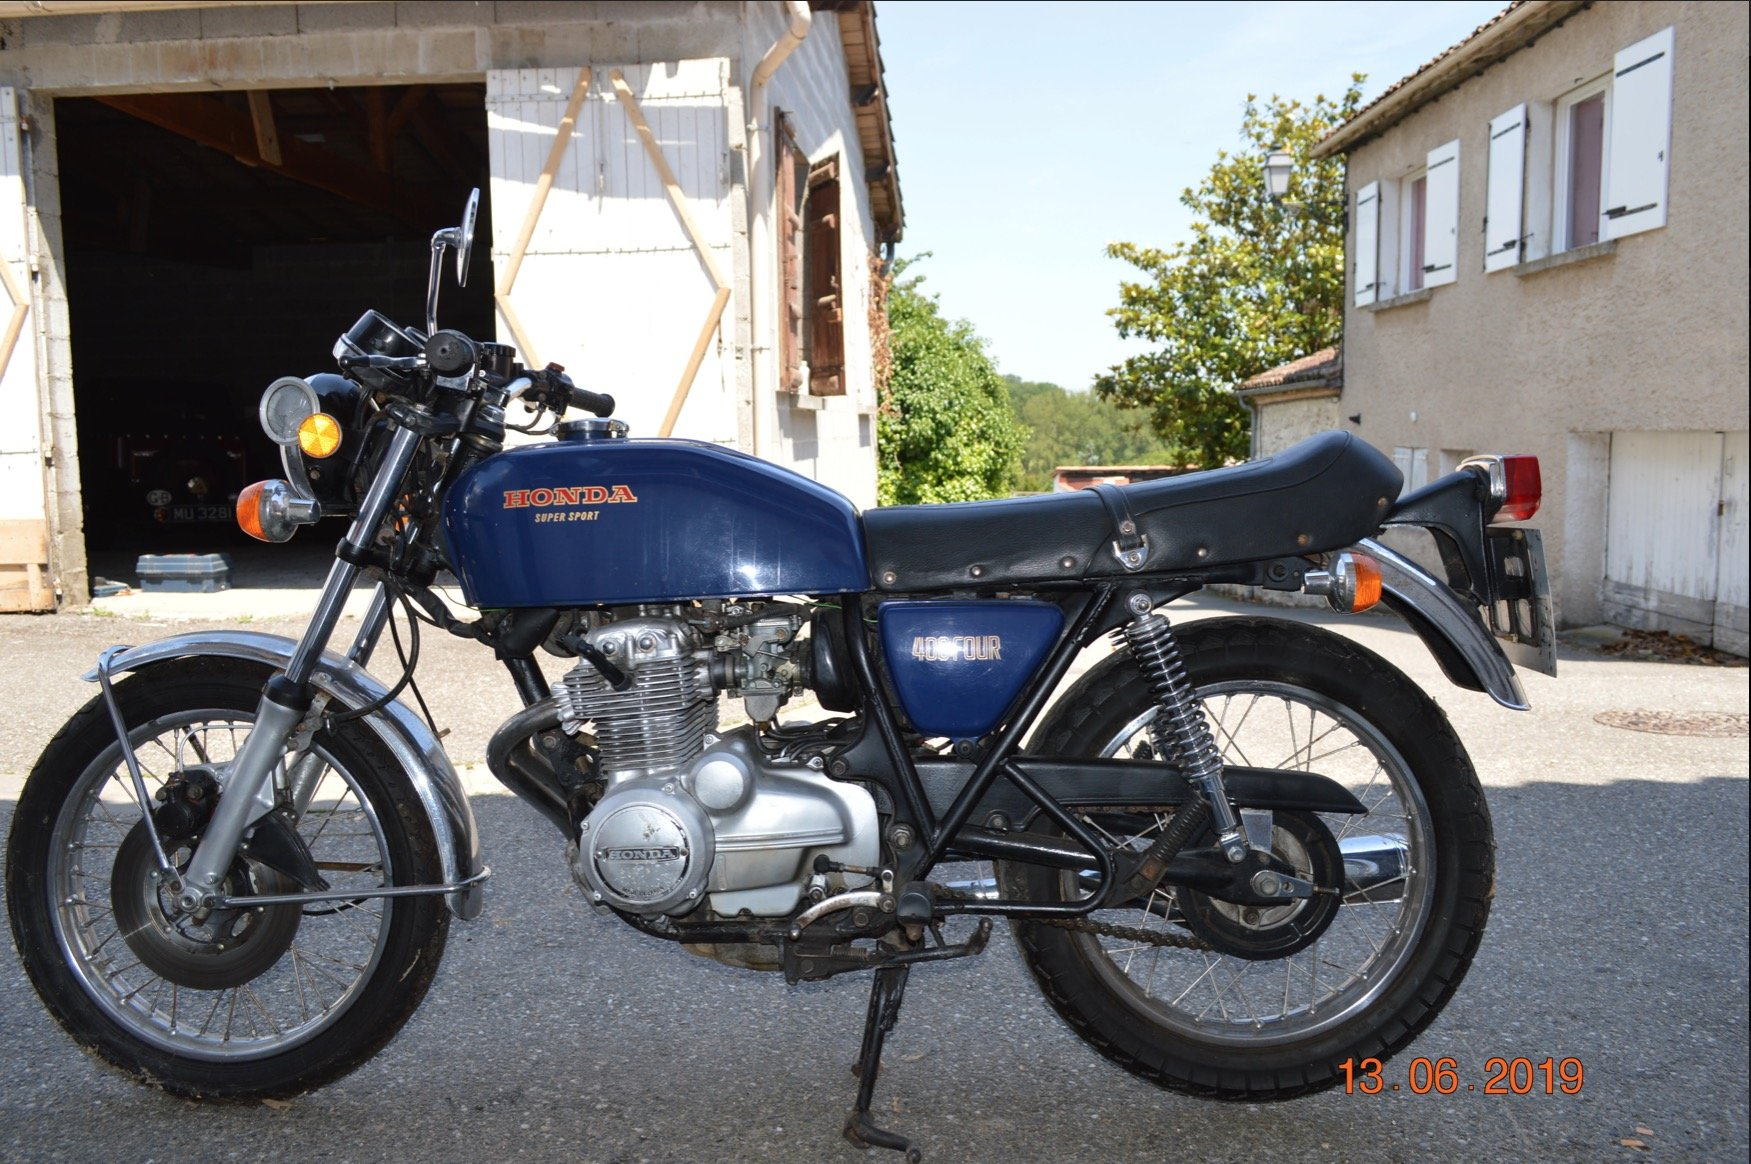 1976 Honda 400/4 ex; Denis Jenkinson For Sale (picture 2 of 2)